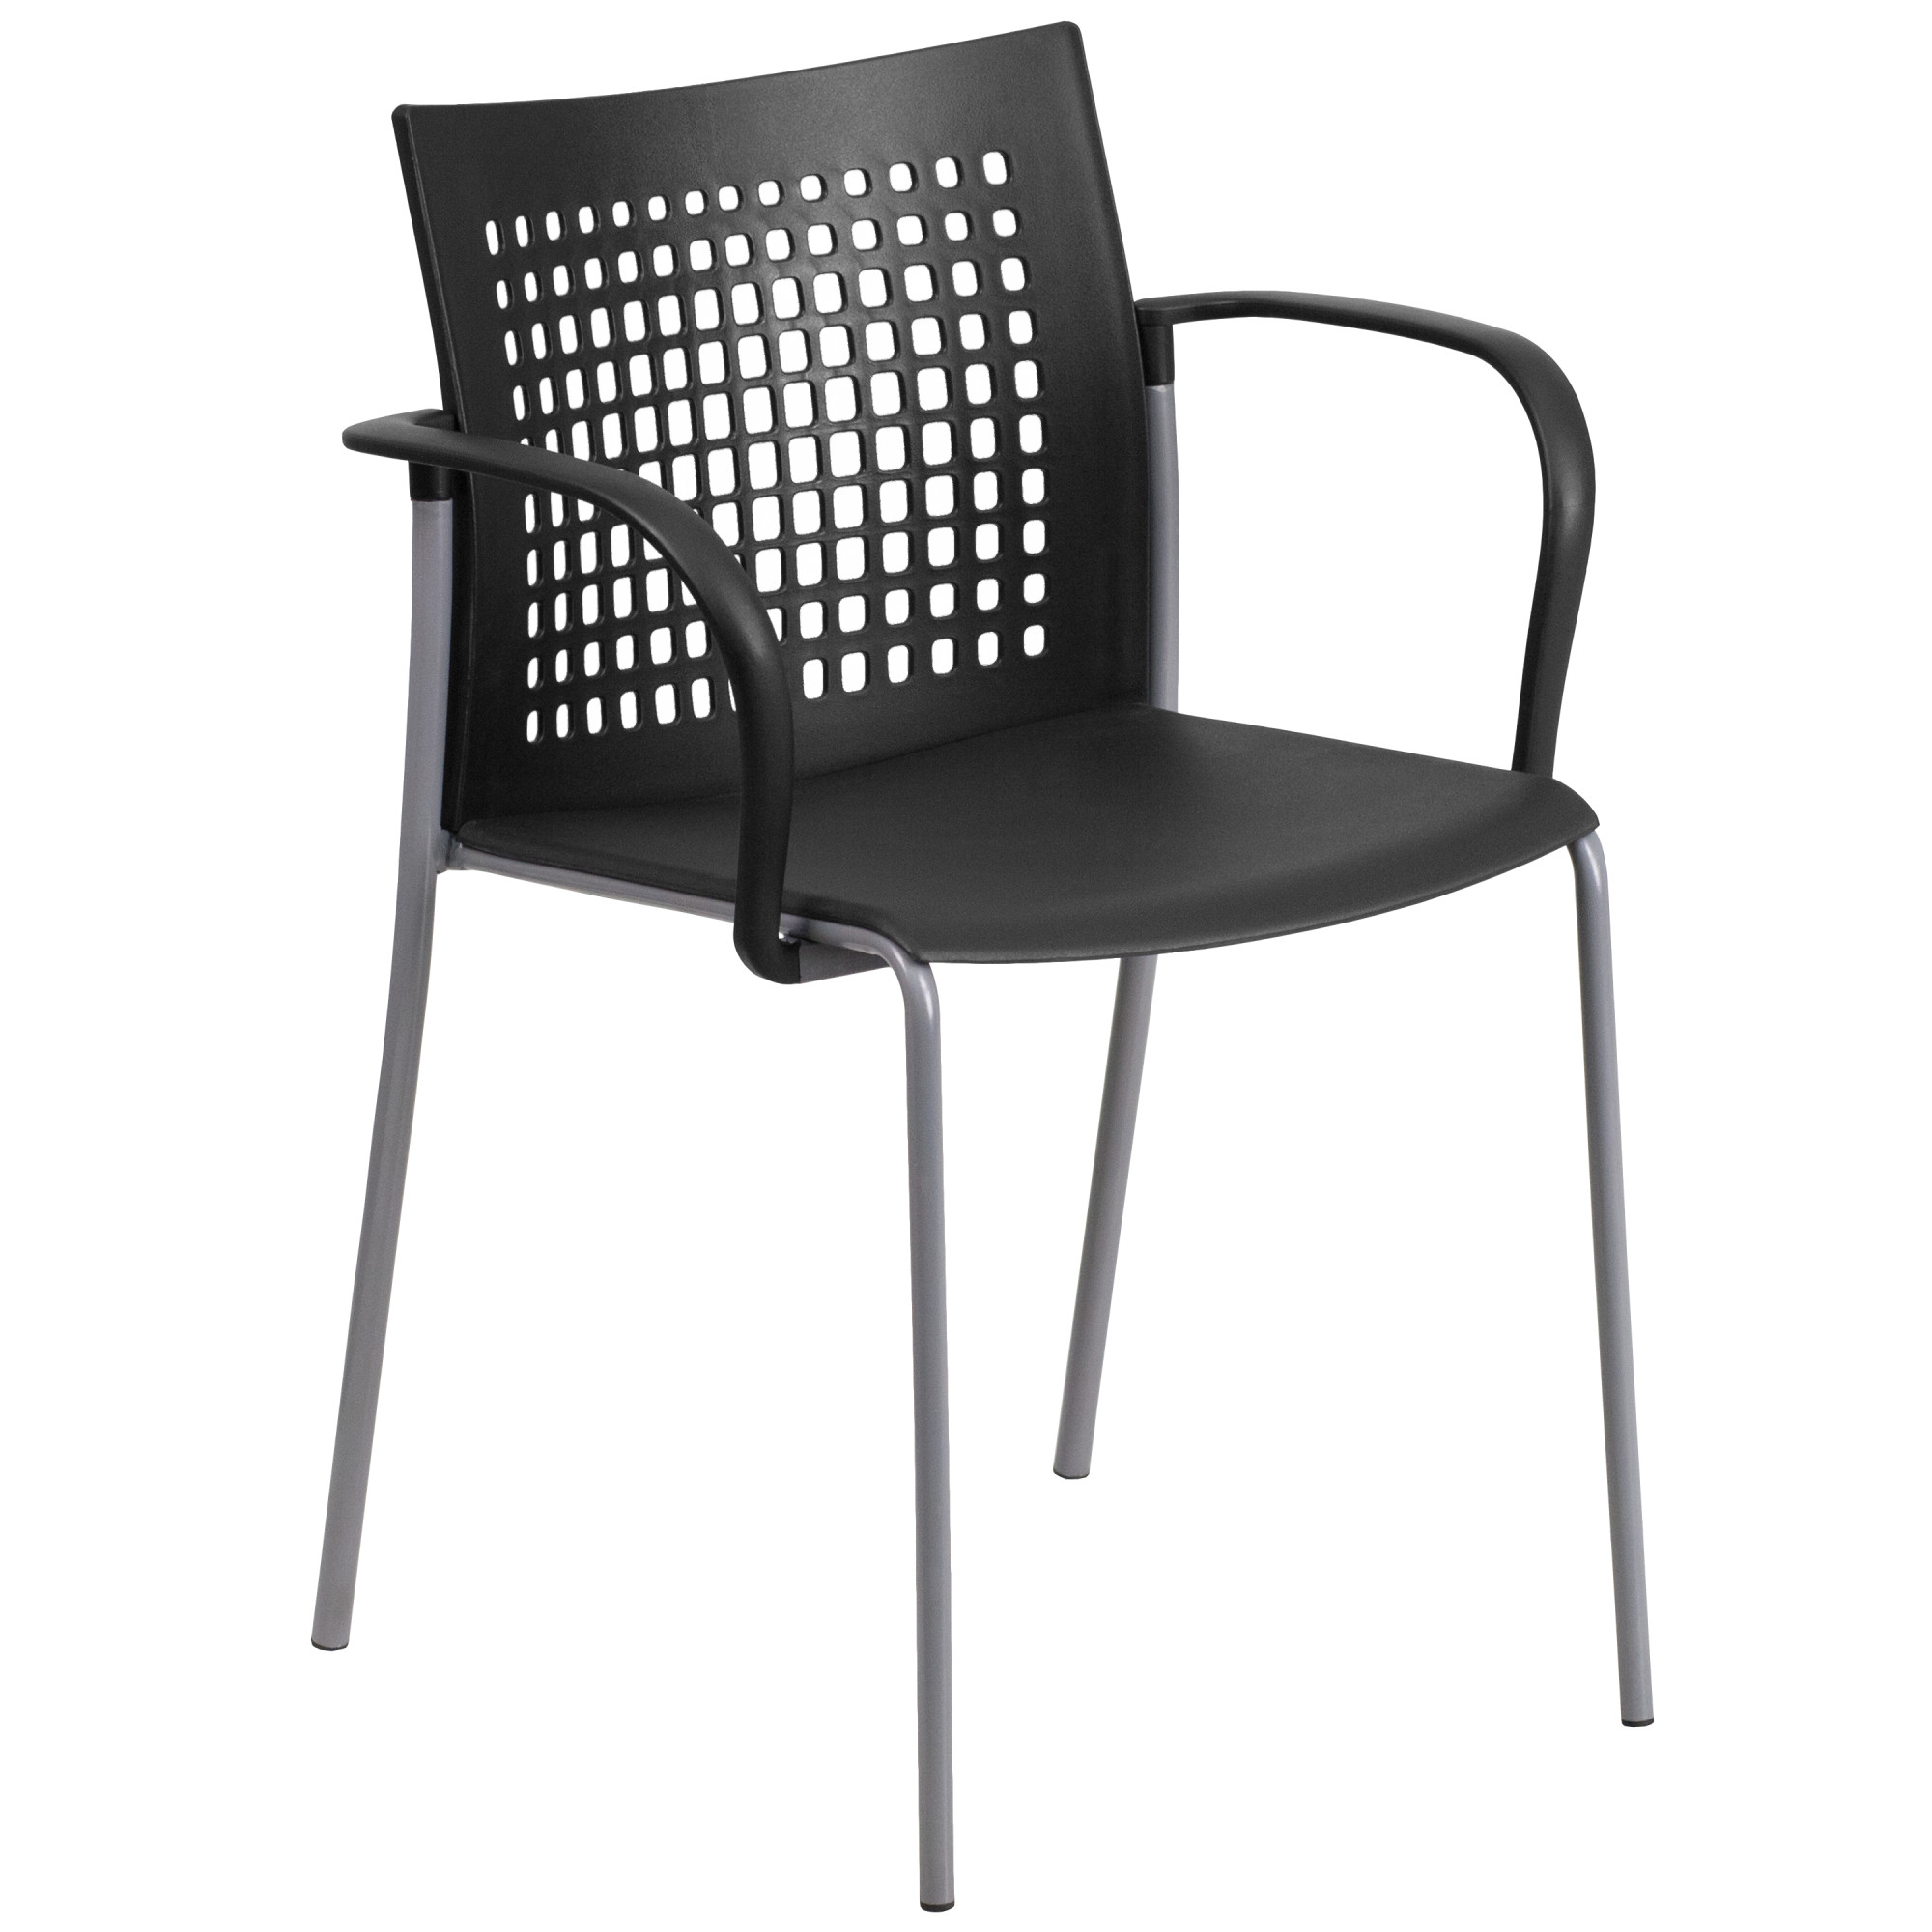 Flash Furniture HERCULES Series 551 lb Capacity Stack Chair with Air-Vent Back and Arms, Multiple Colors